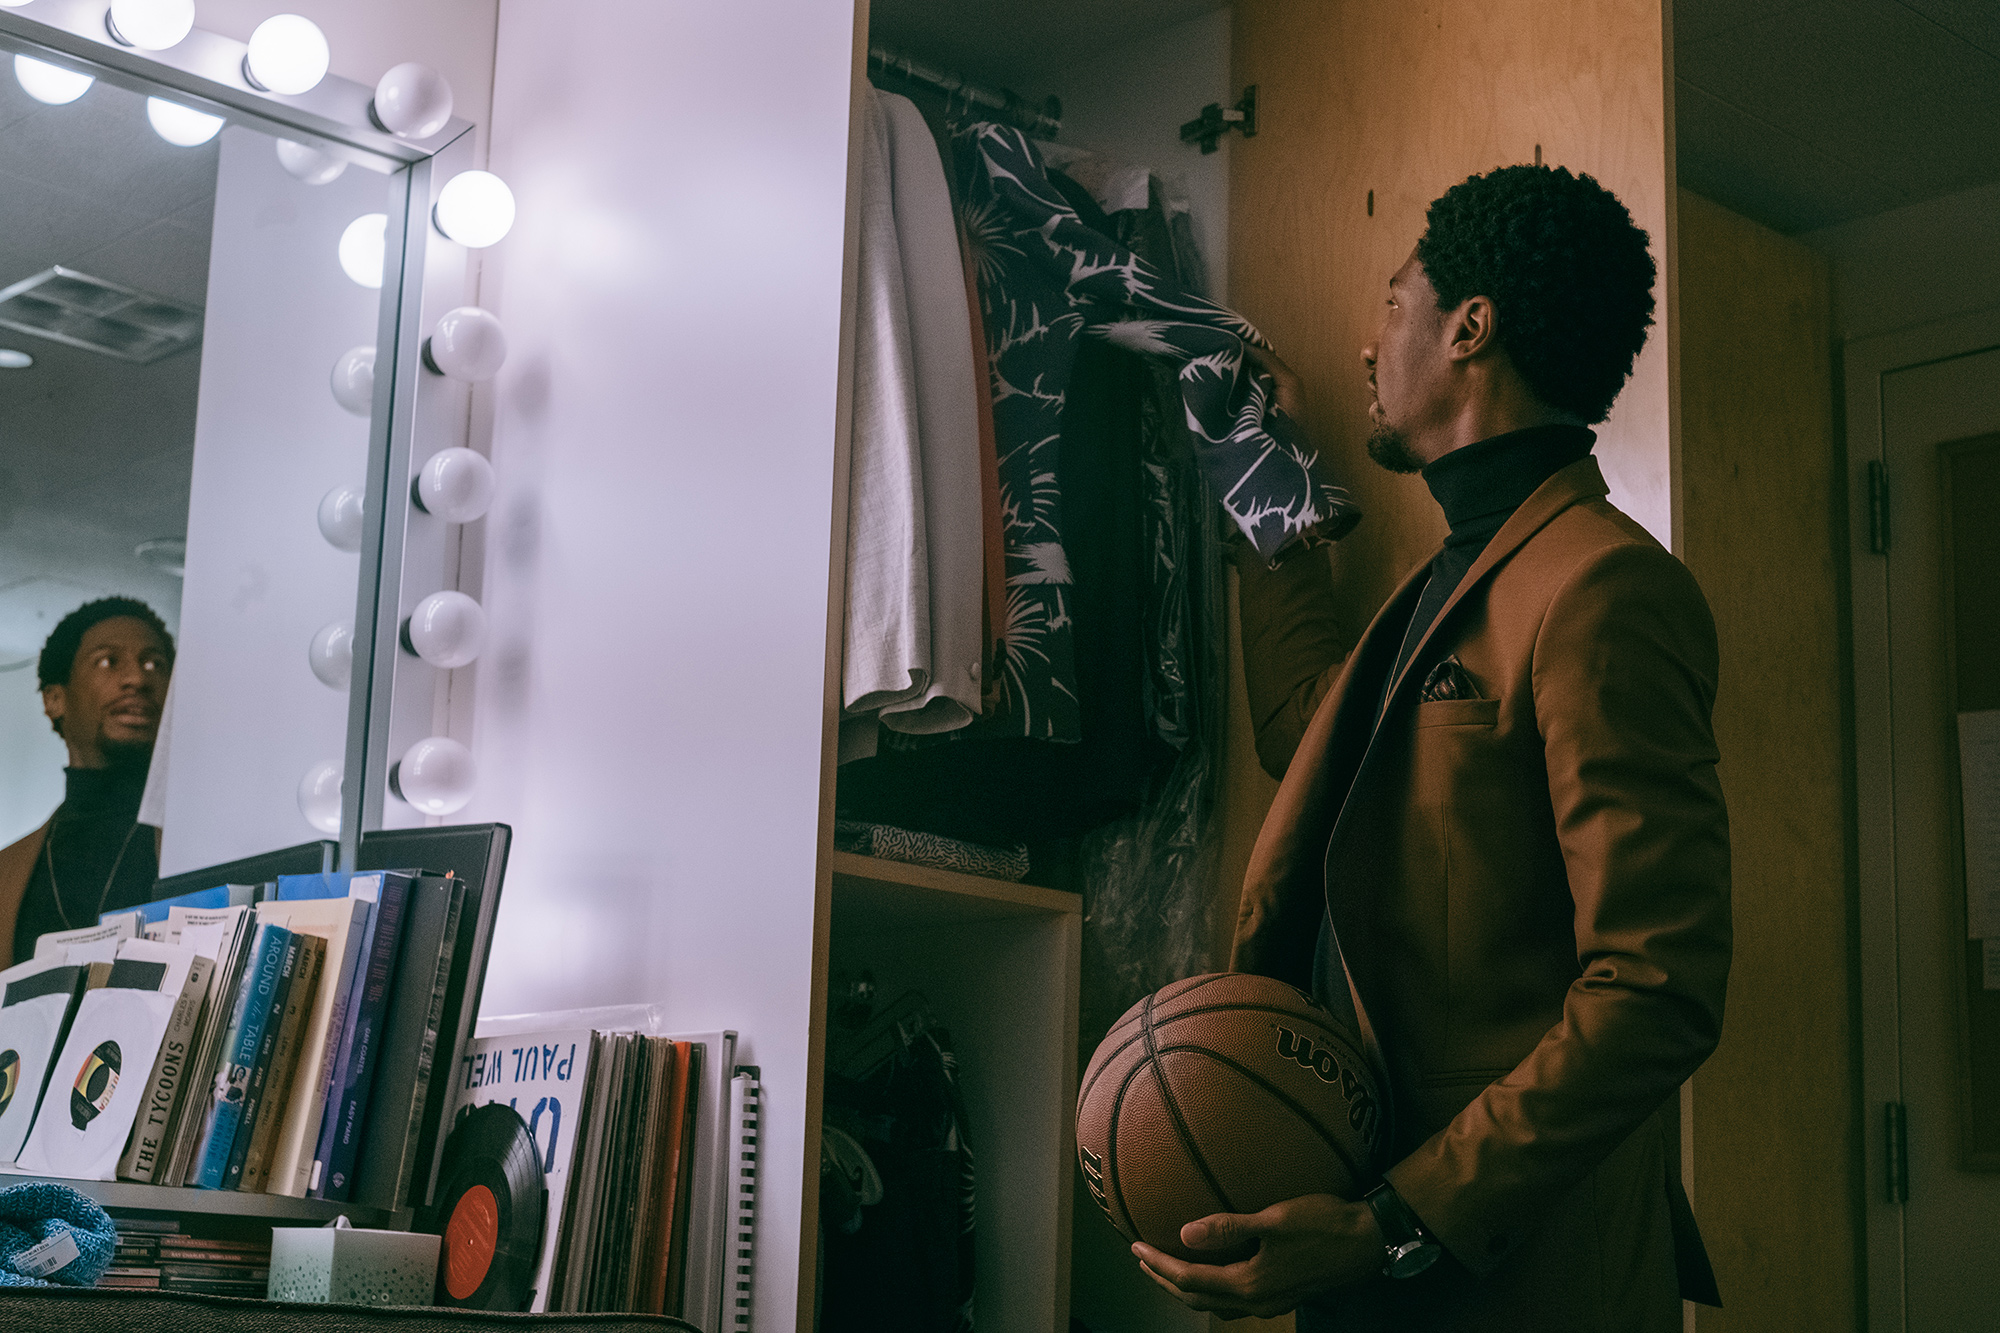 Backstage at \'The Late Show\' with Jon Batiste — The Undefeated